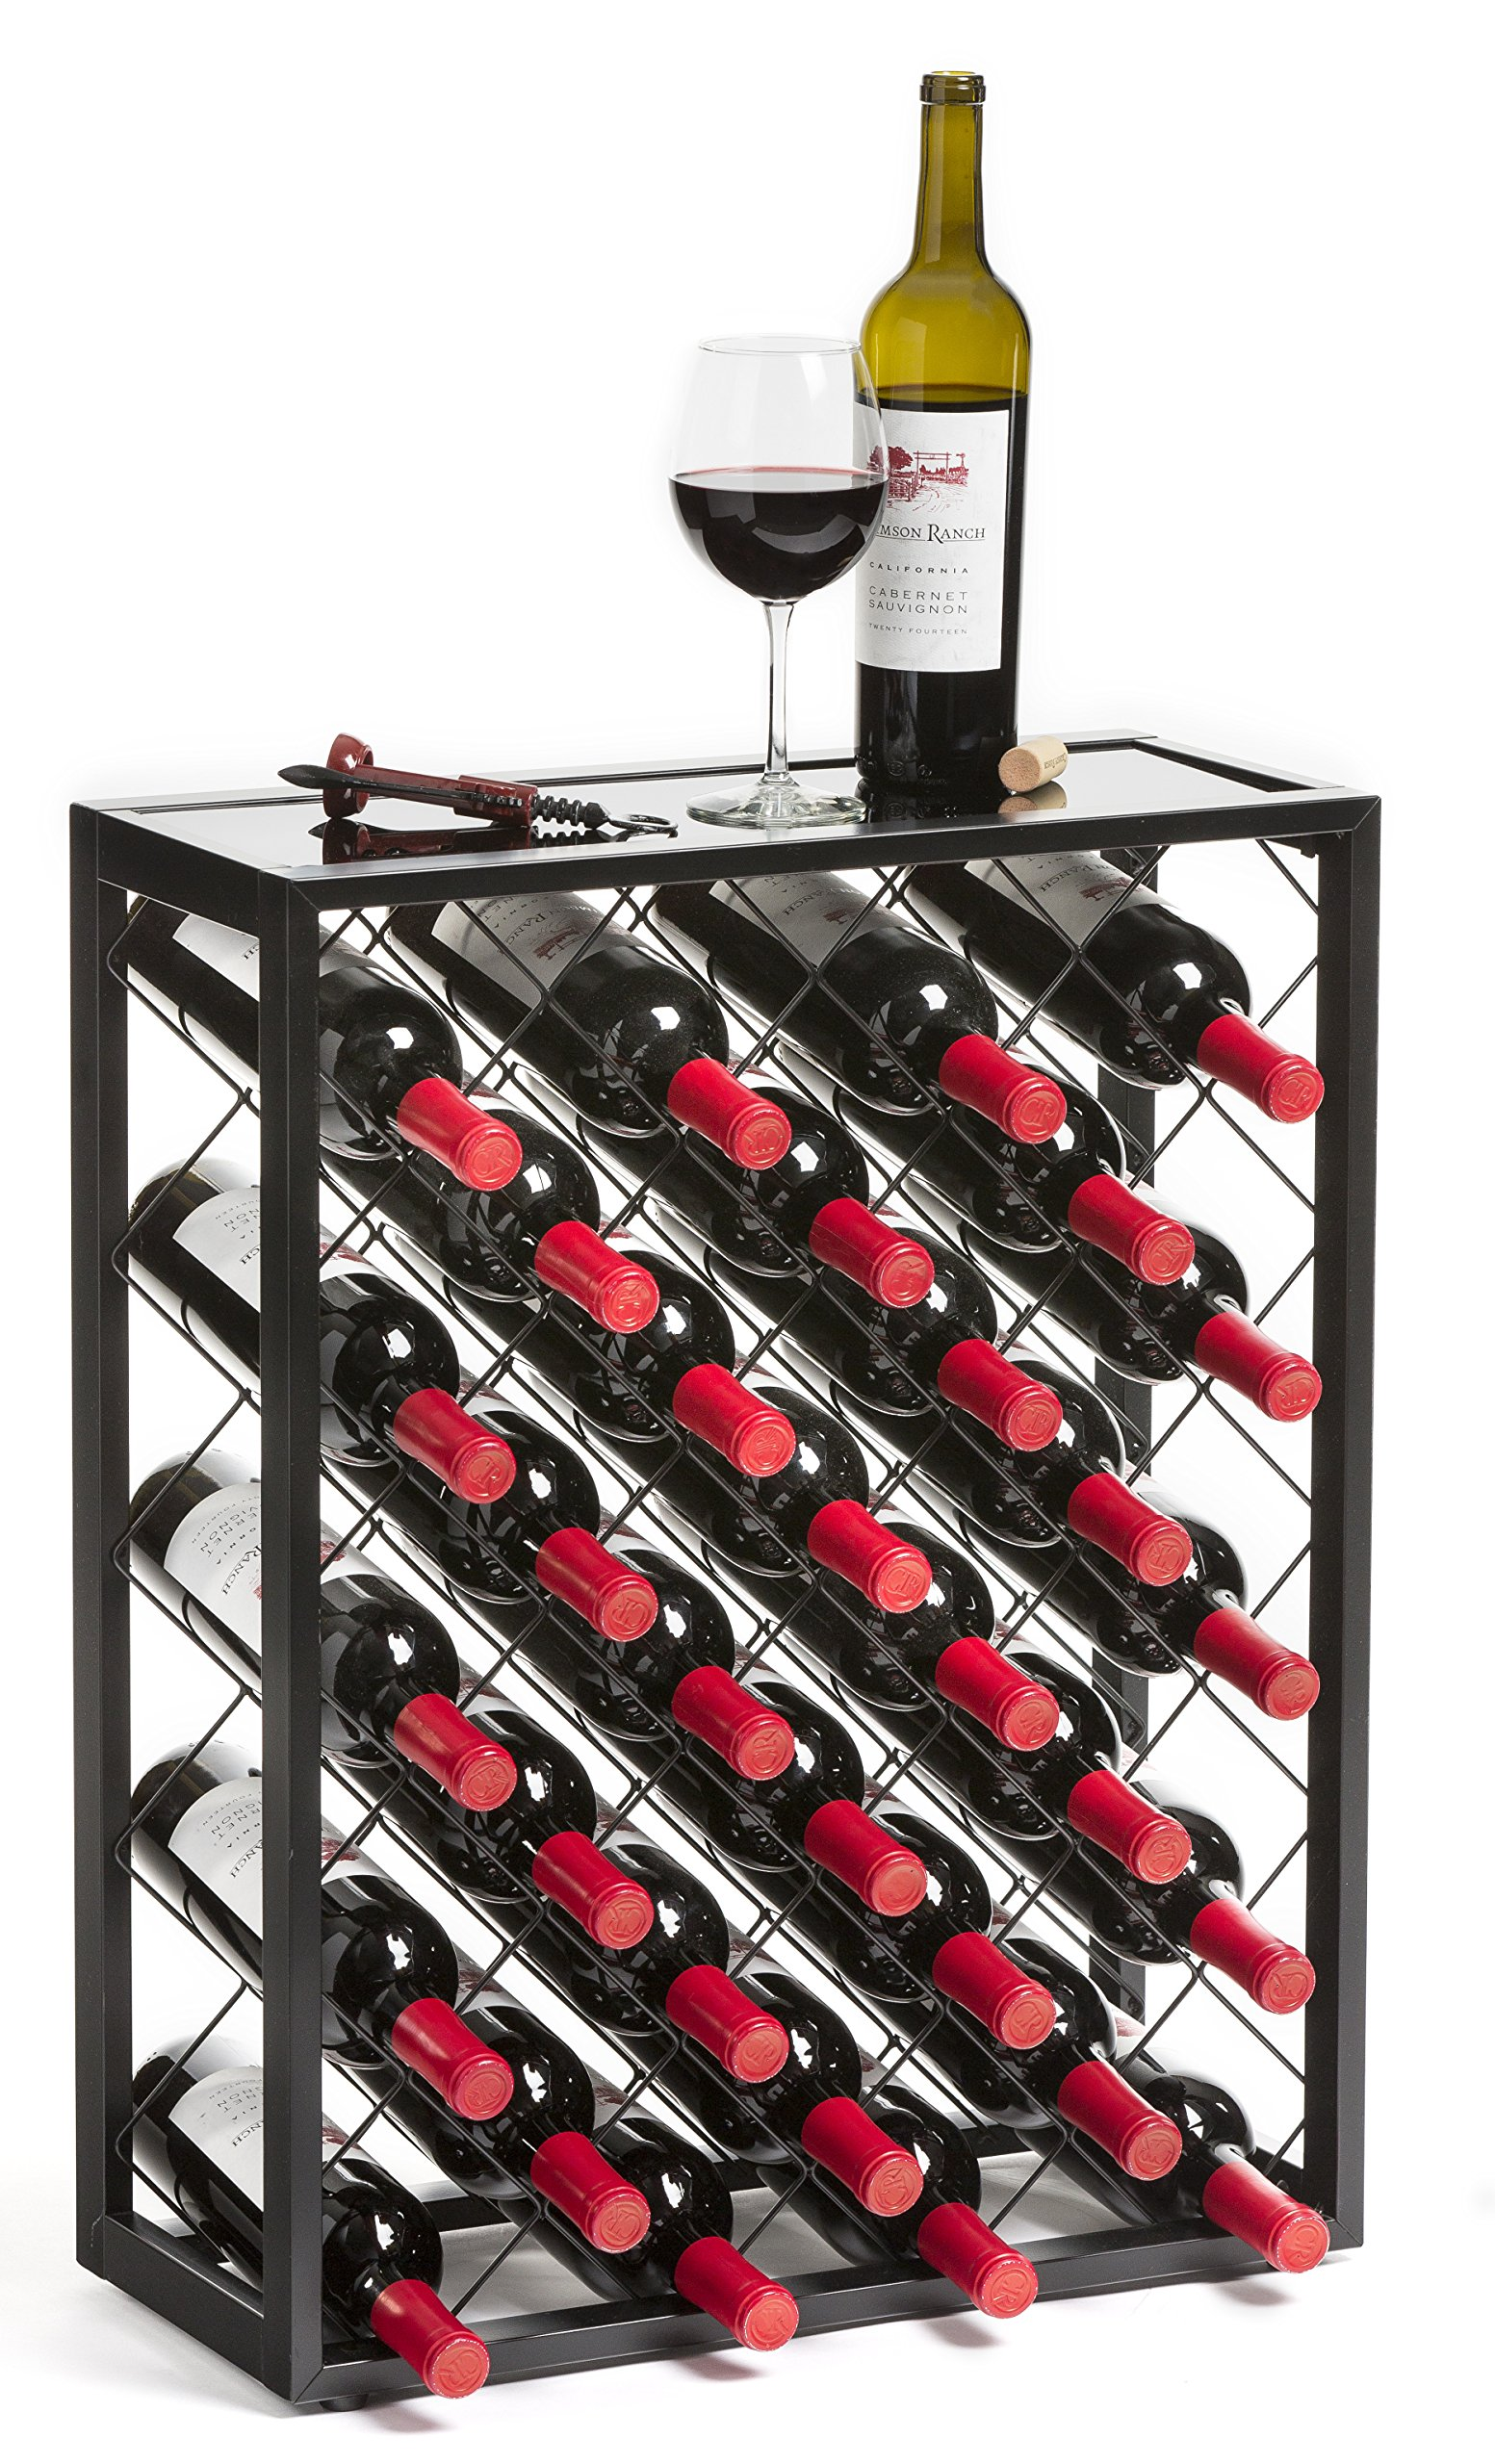 Mango Steam 32 Bottle Wine Rack with Glass Table Top, Black by Mango Steam